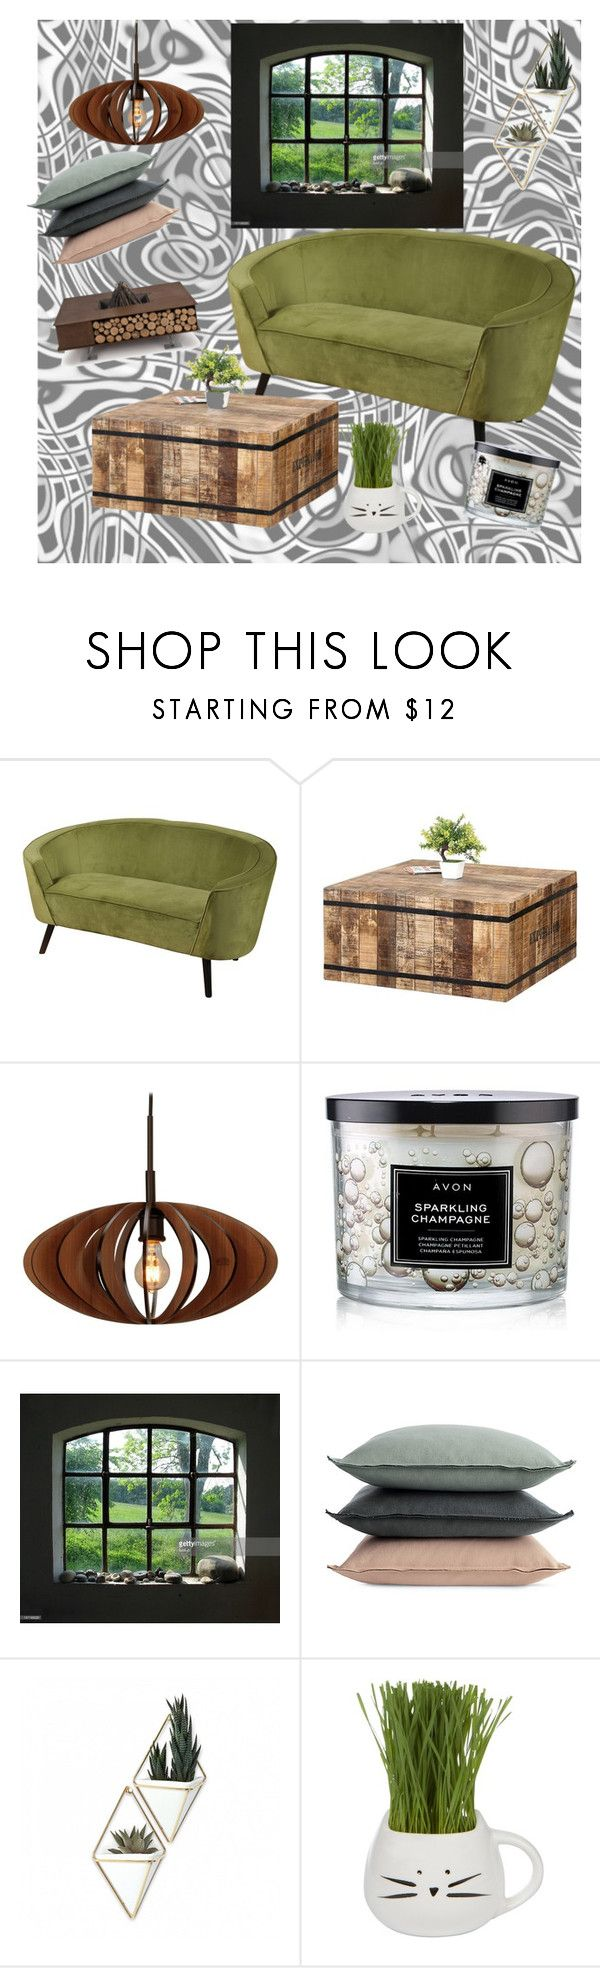 """""""Great Afternoon at Home"""" by melanieliz68 on Polyvore featuring interior, interiors, interior design, home, home decor, interior decorating, Woodbridge Lighting, Avon, Design Within Reach and Umbra"""